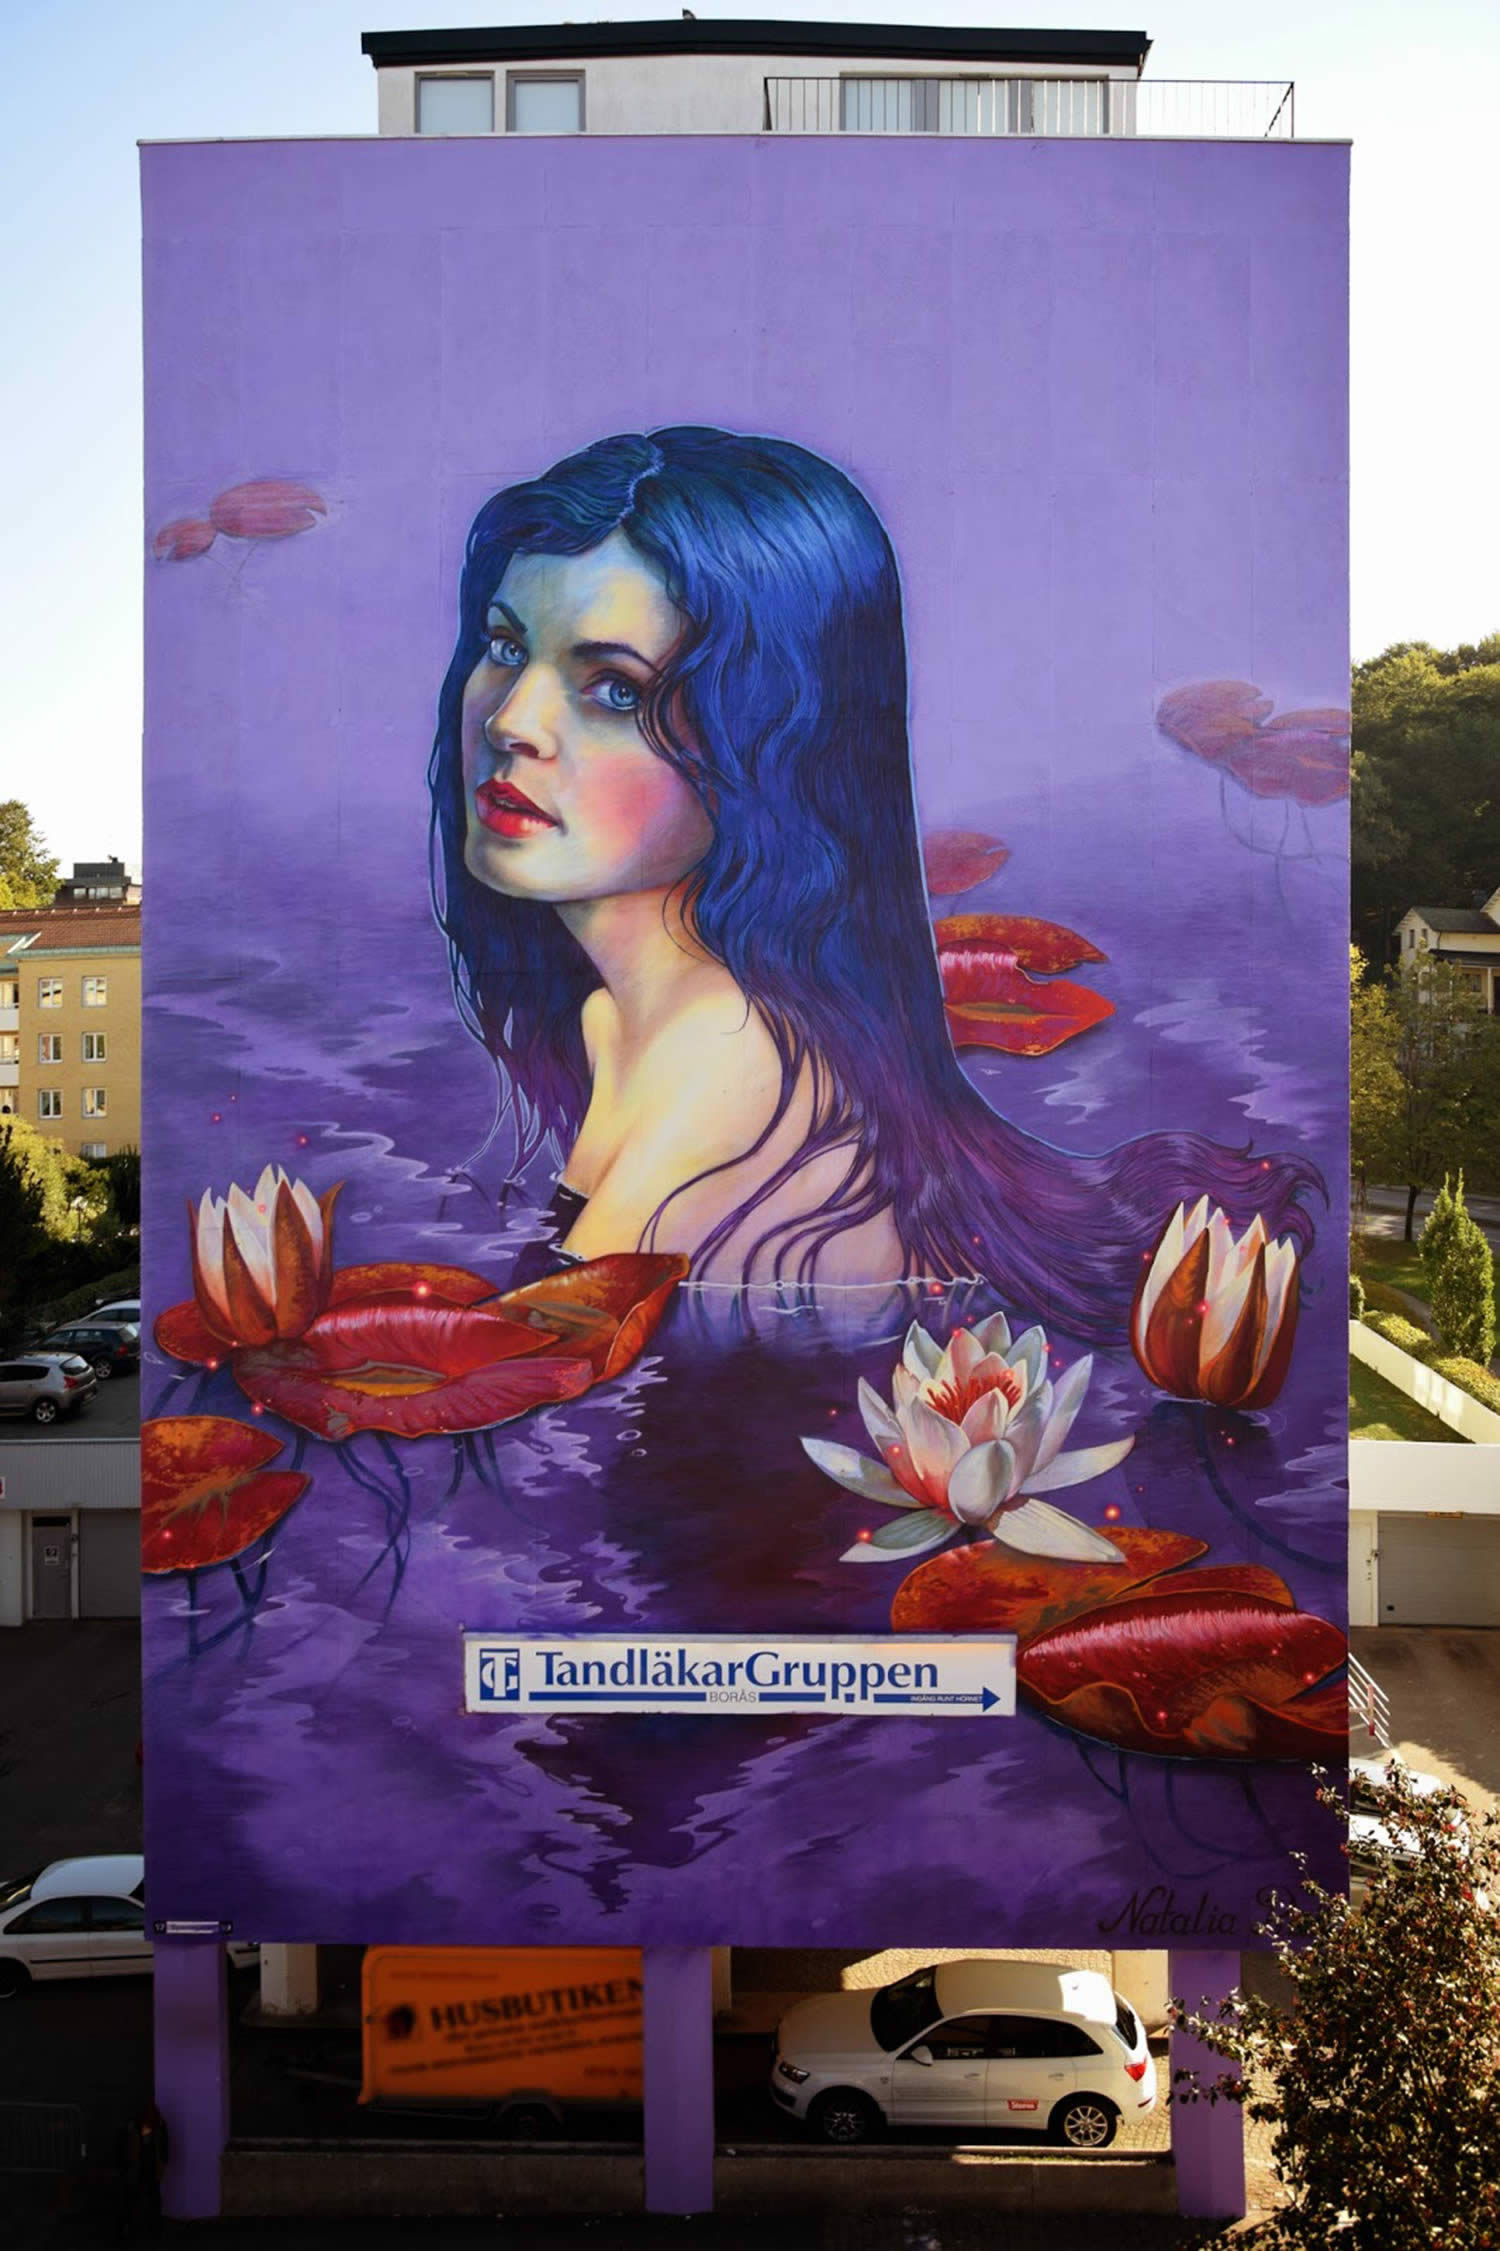 blue hair girl mural, graffiti by natalia rak